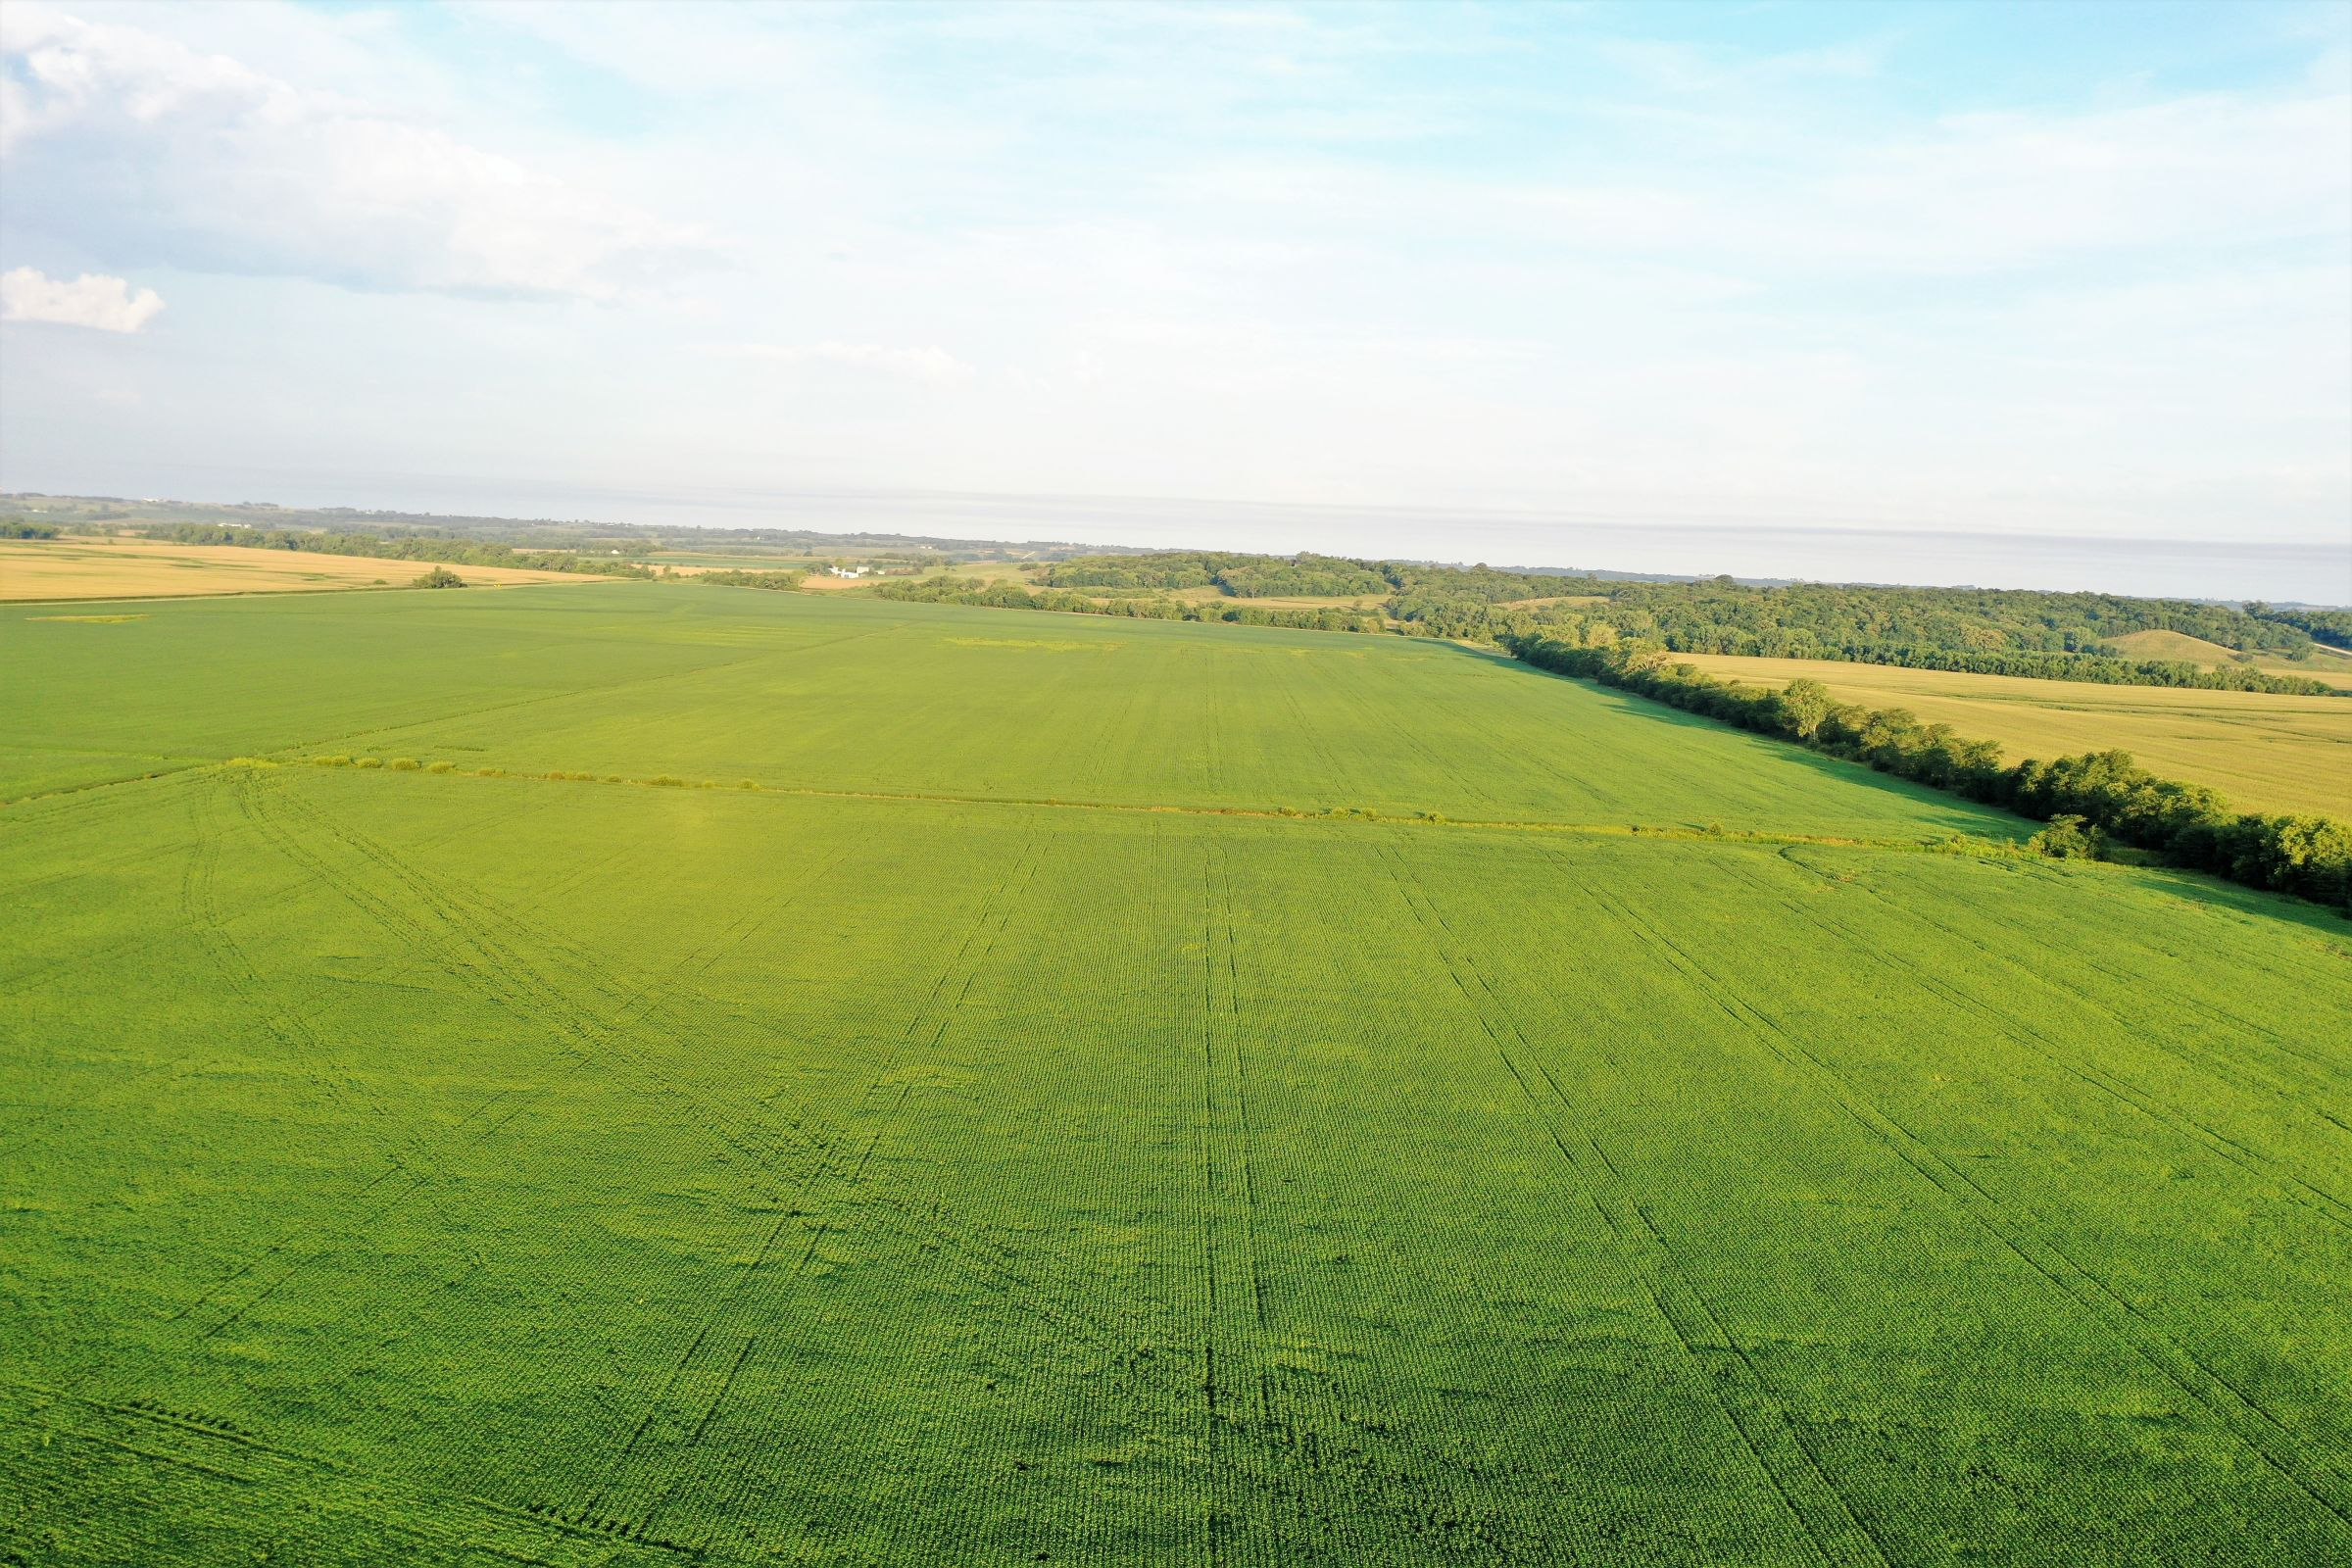 land-page-county-iowa-160-acres-listing-number-15117-0-2020-08-13-175511.jpg